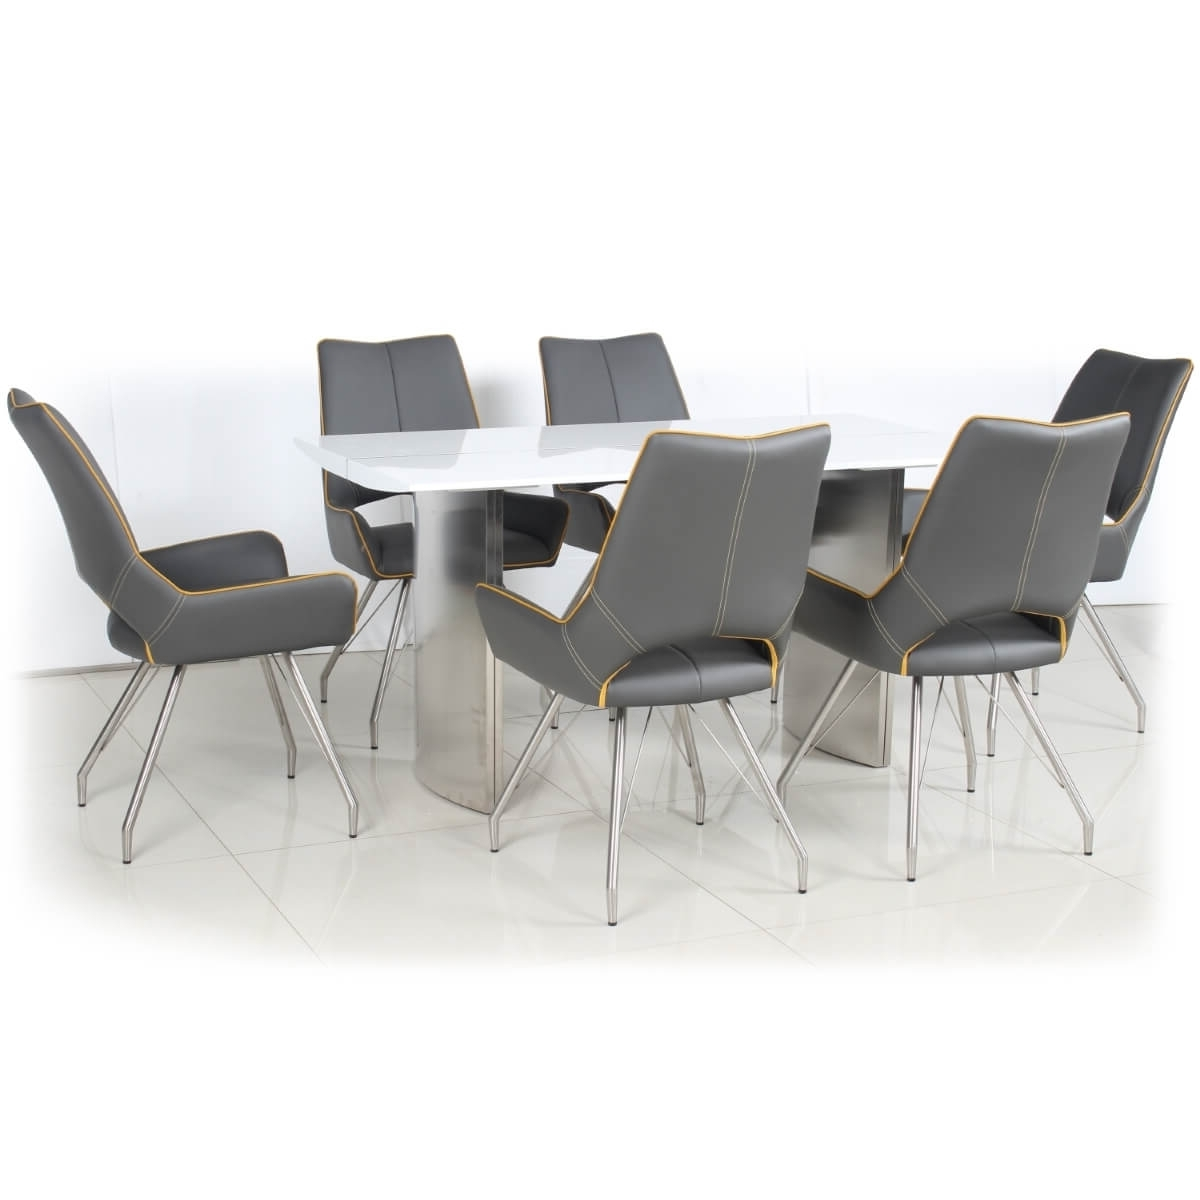 White High Gloss Dining Tables 6 Chairs Intended For 2017 Dining Set – White High Gloss Dining Table And 6 Grey Dining Chairs (View 19 of 25)